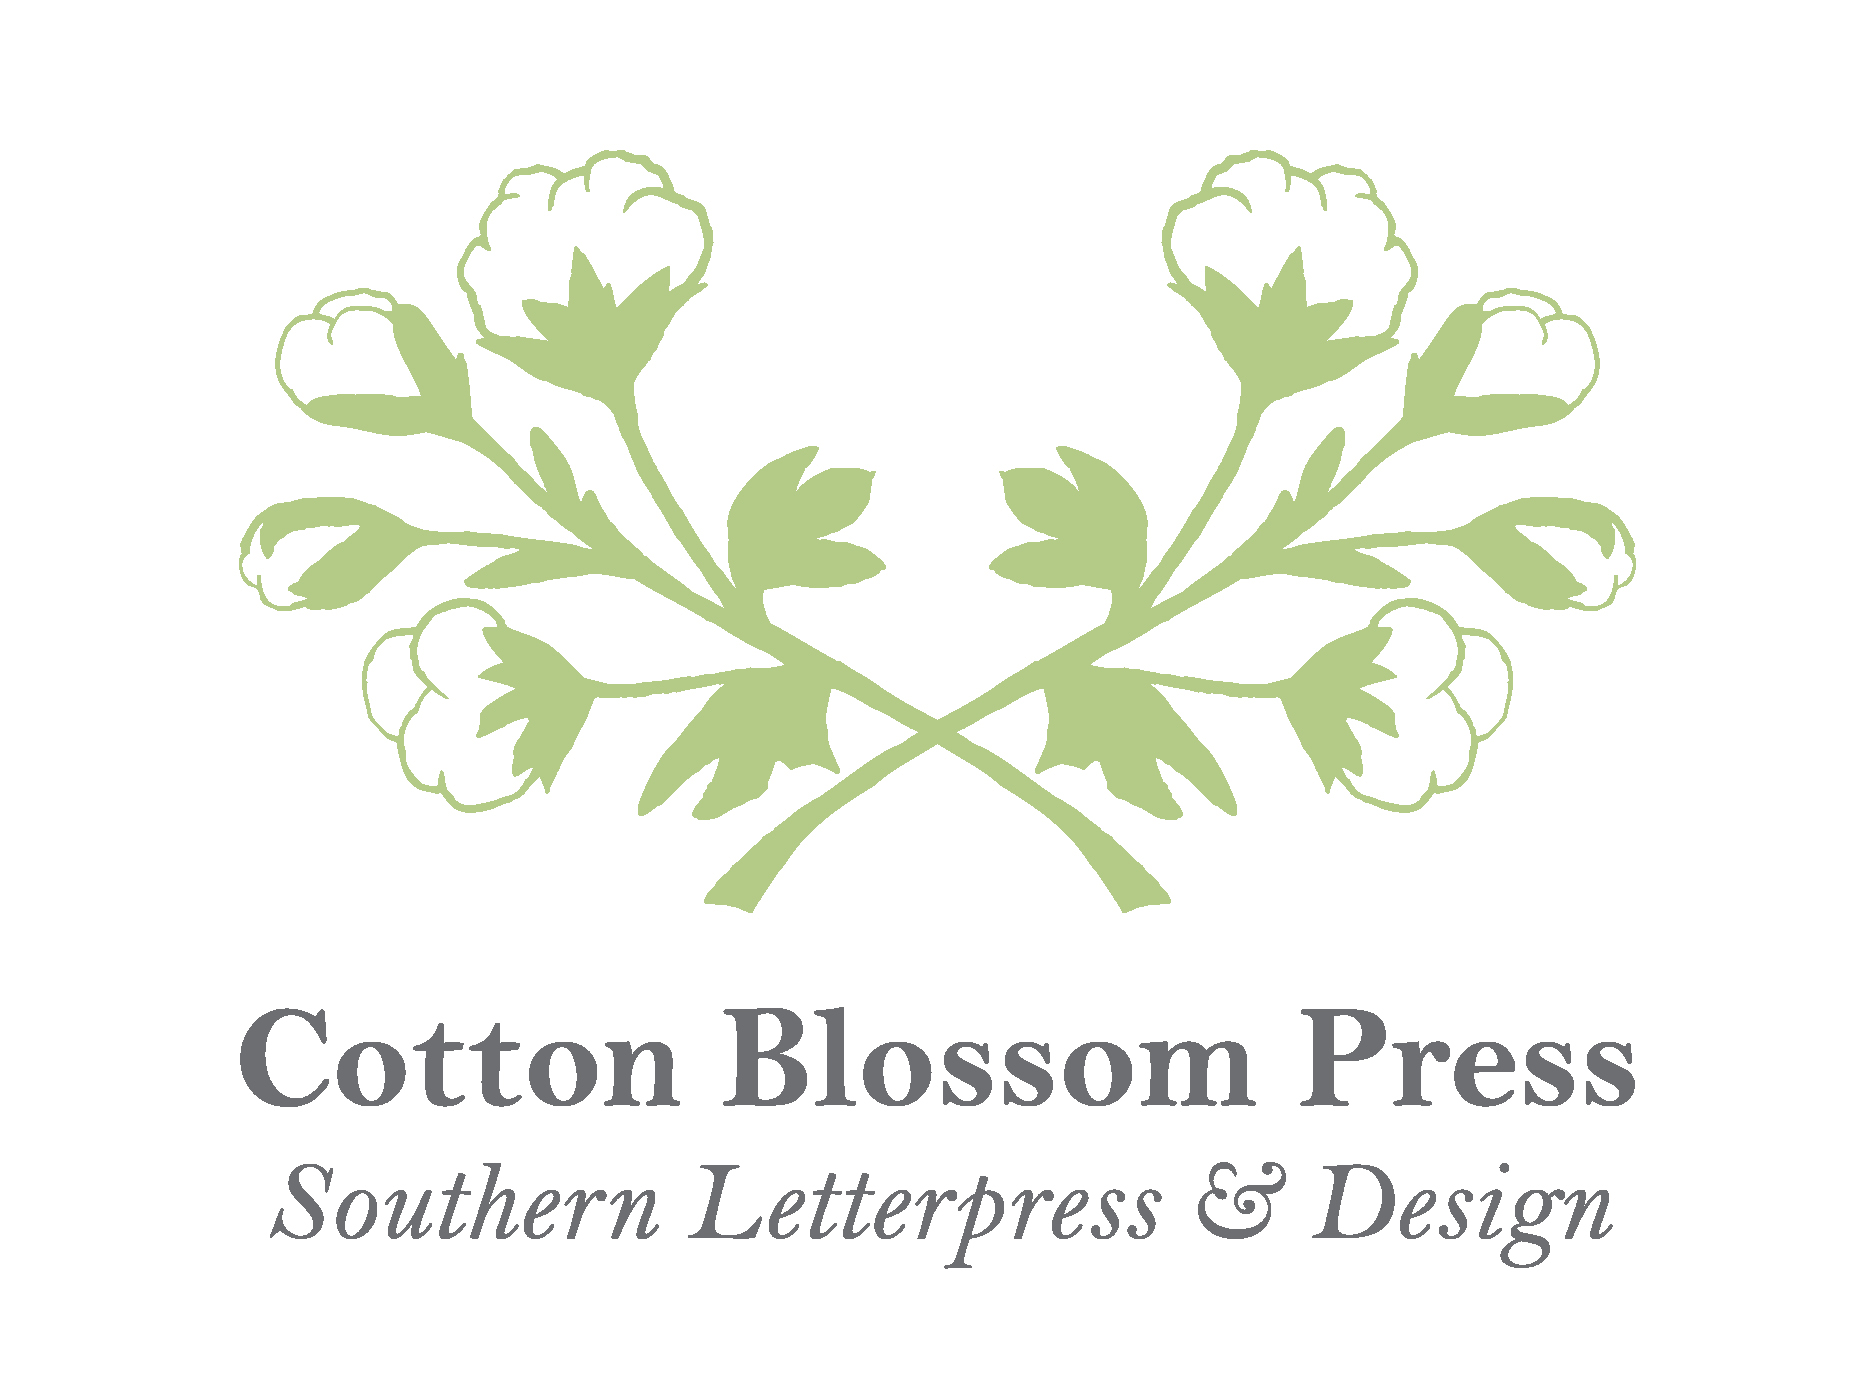 Cotton Blossom Press